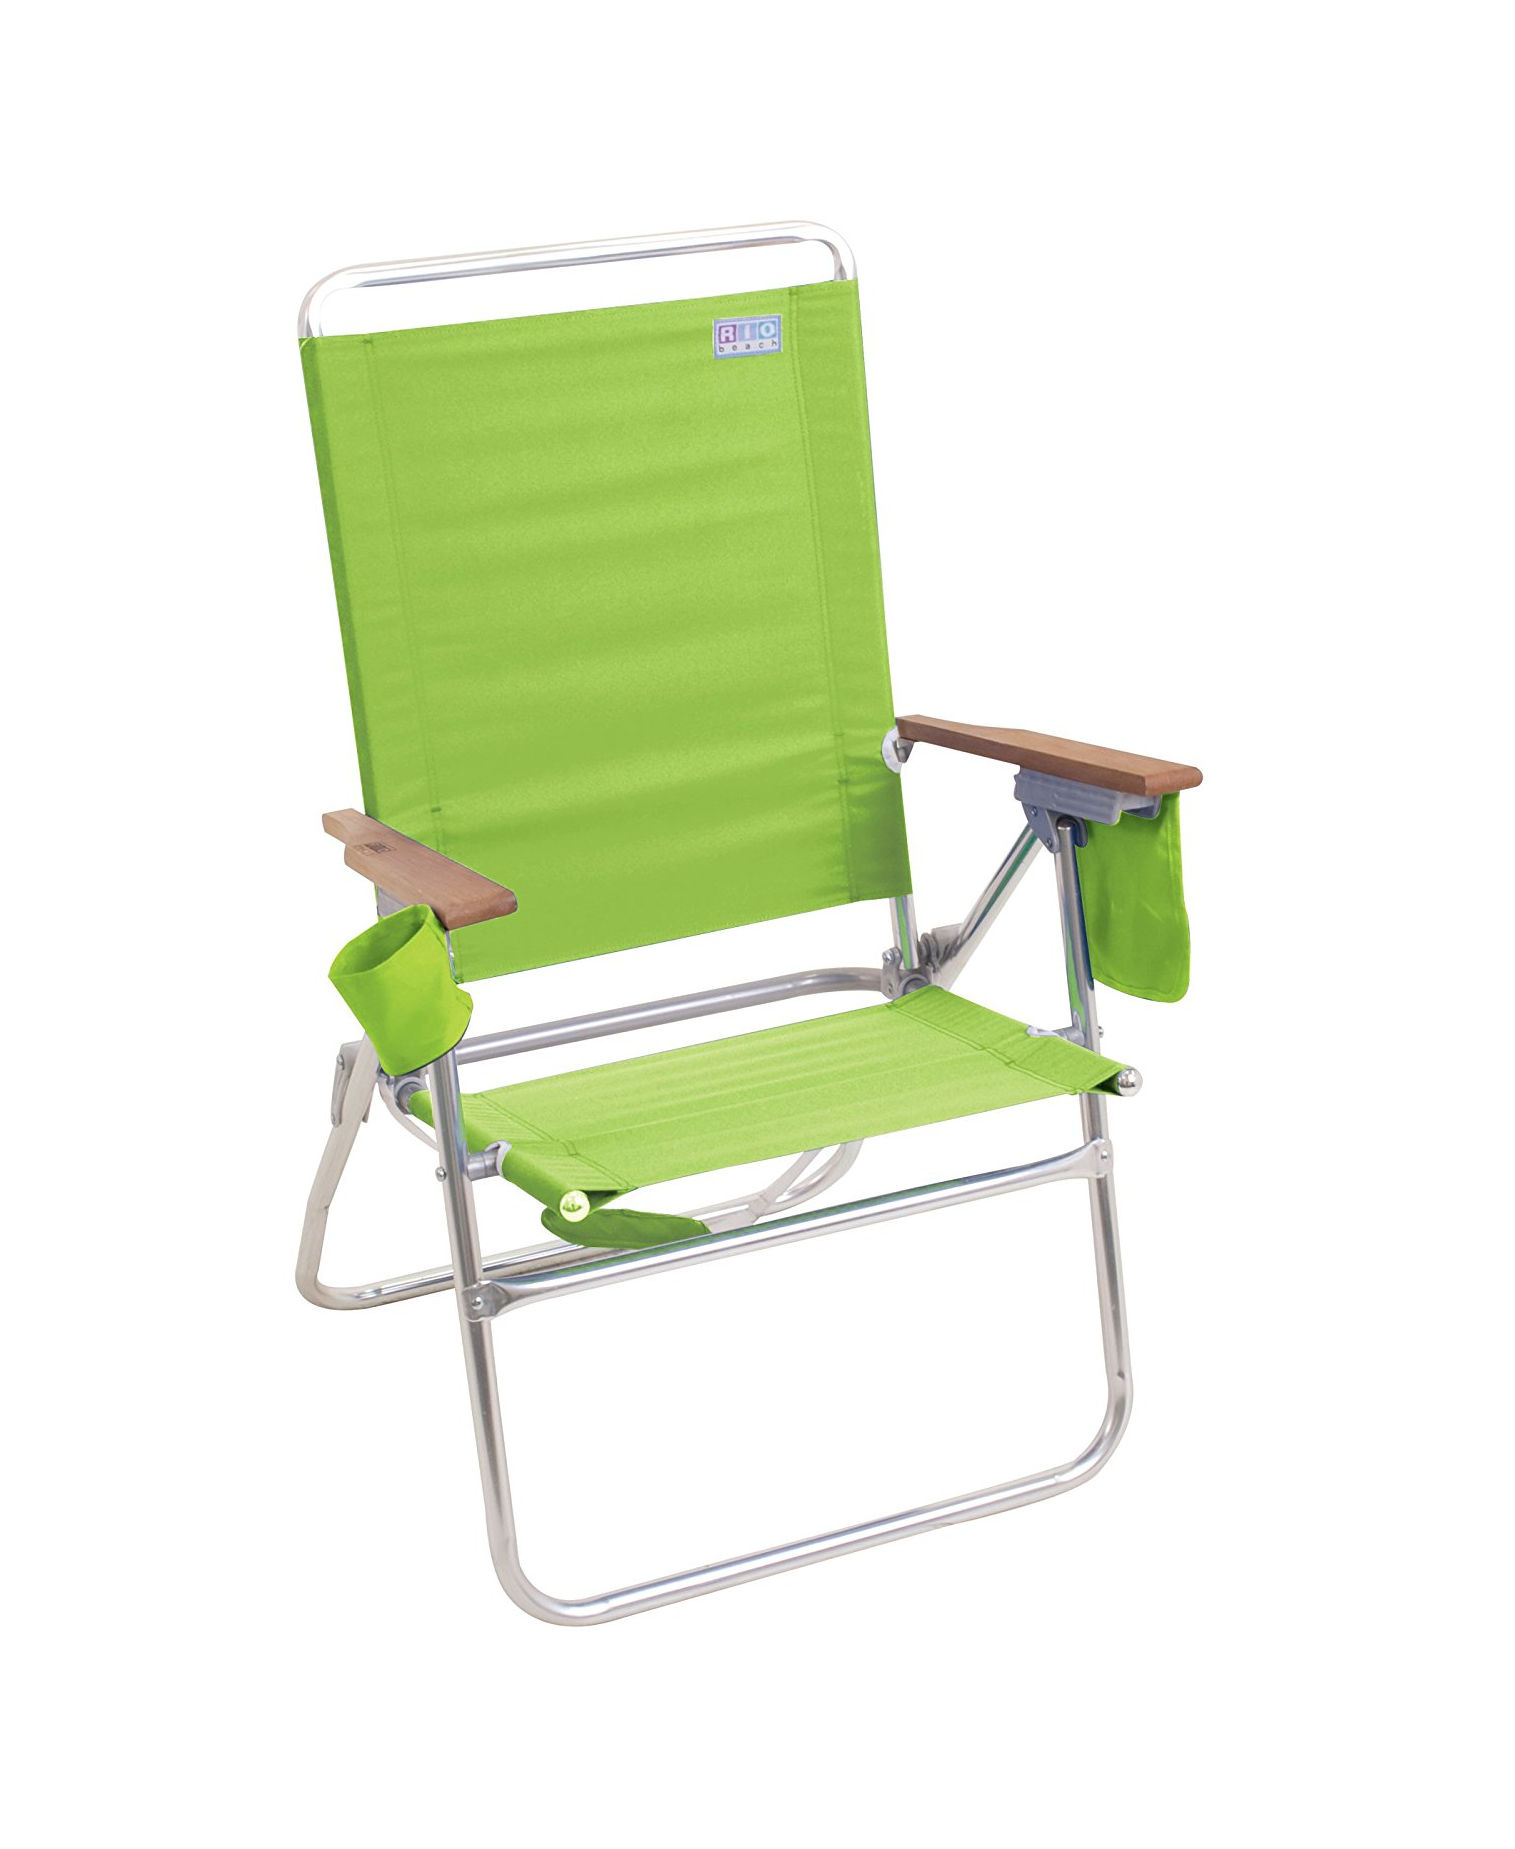 Swell High Back Beach Chair Gamerscity Chair Design For Home Gamerscityorg